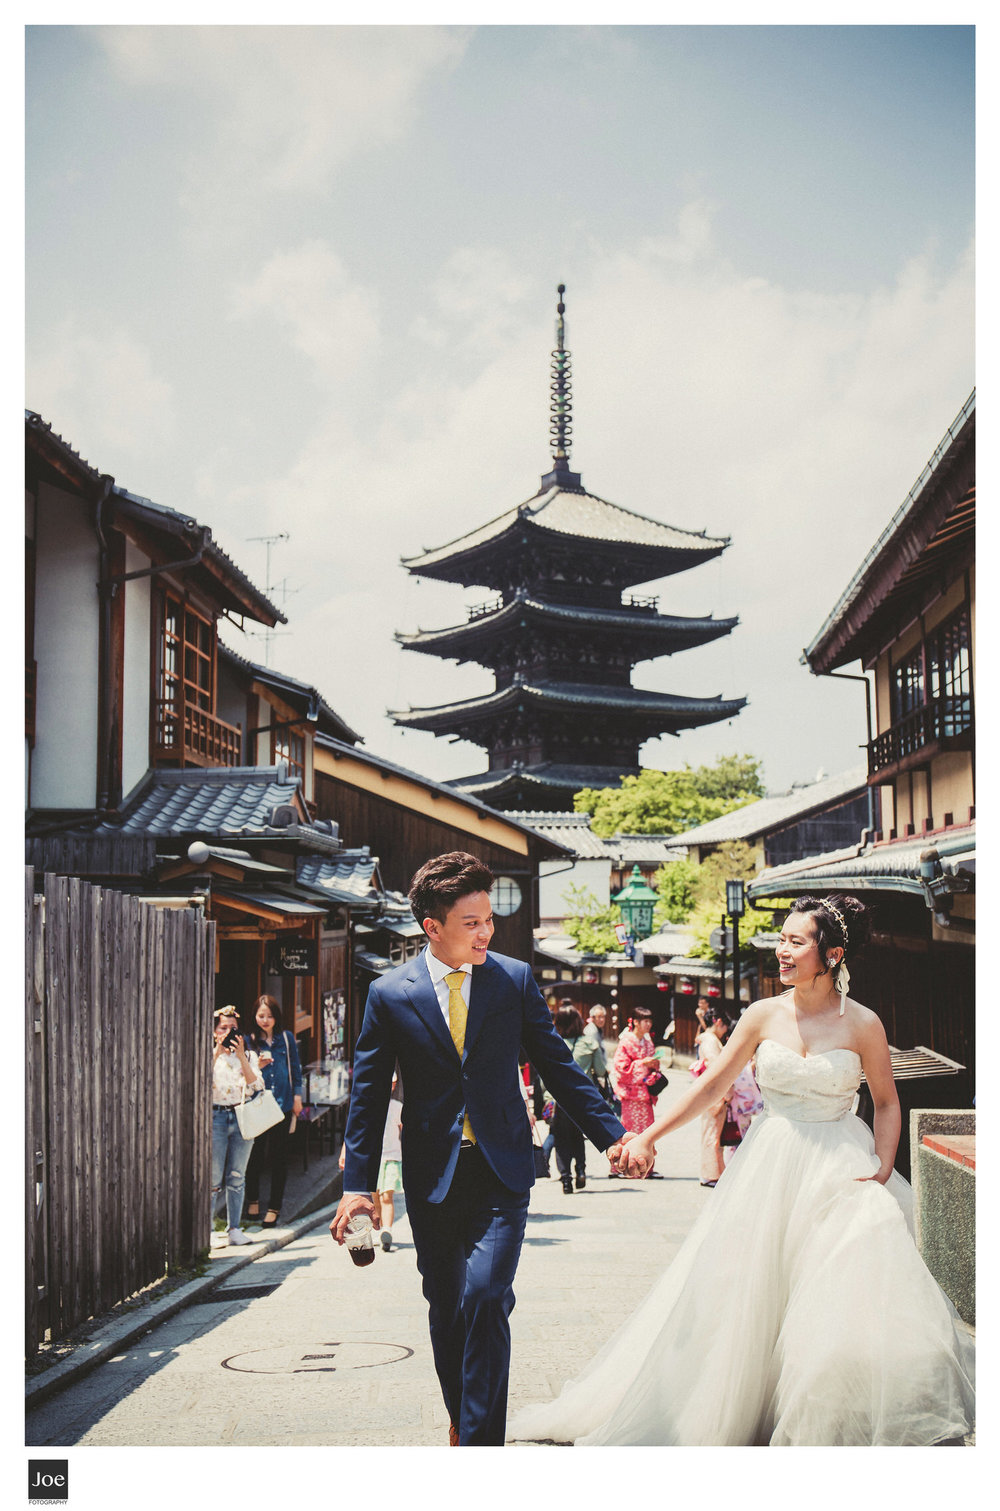 62-hokan-ji-temple-kyoto-pre-wedding-angela-danny-joe-fotography.jpg